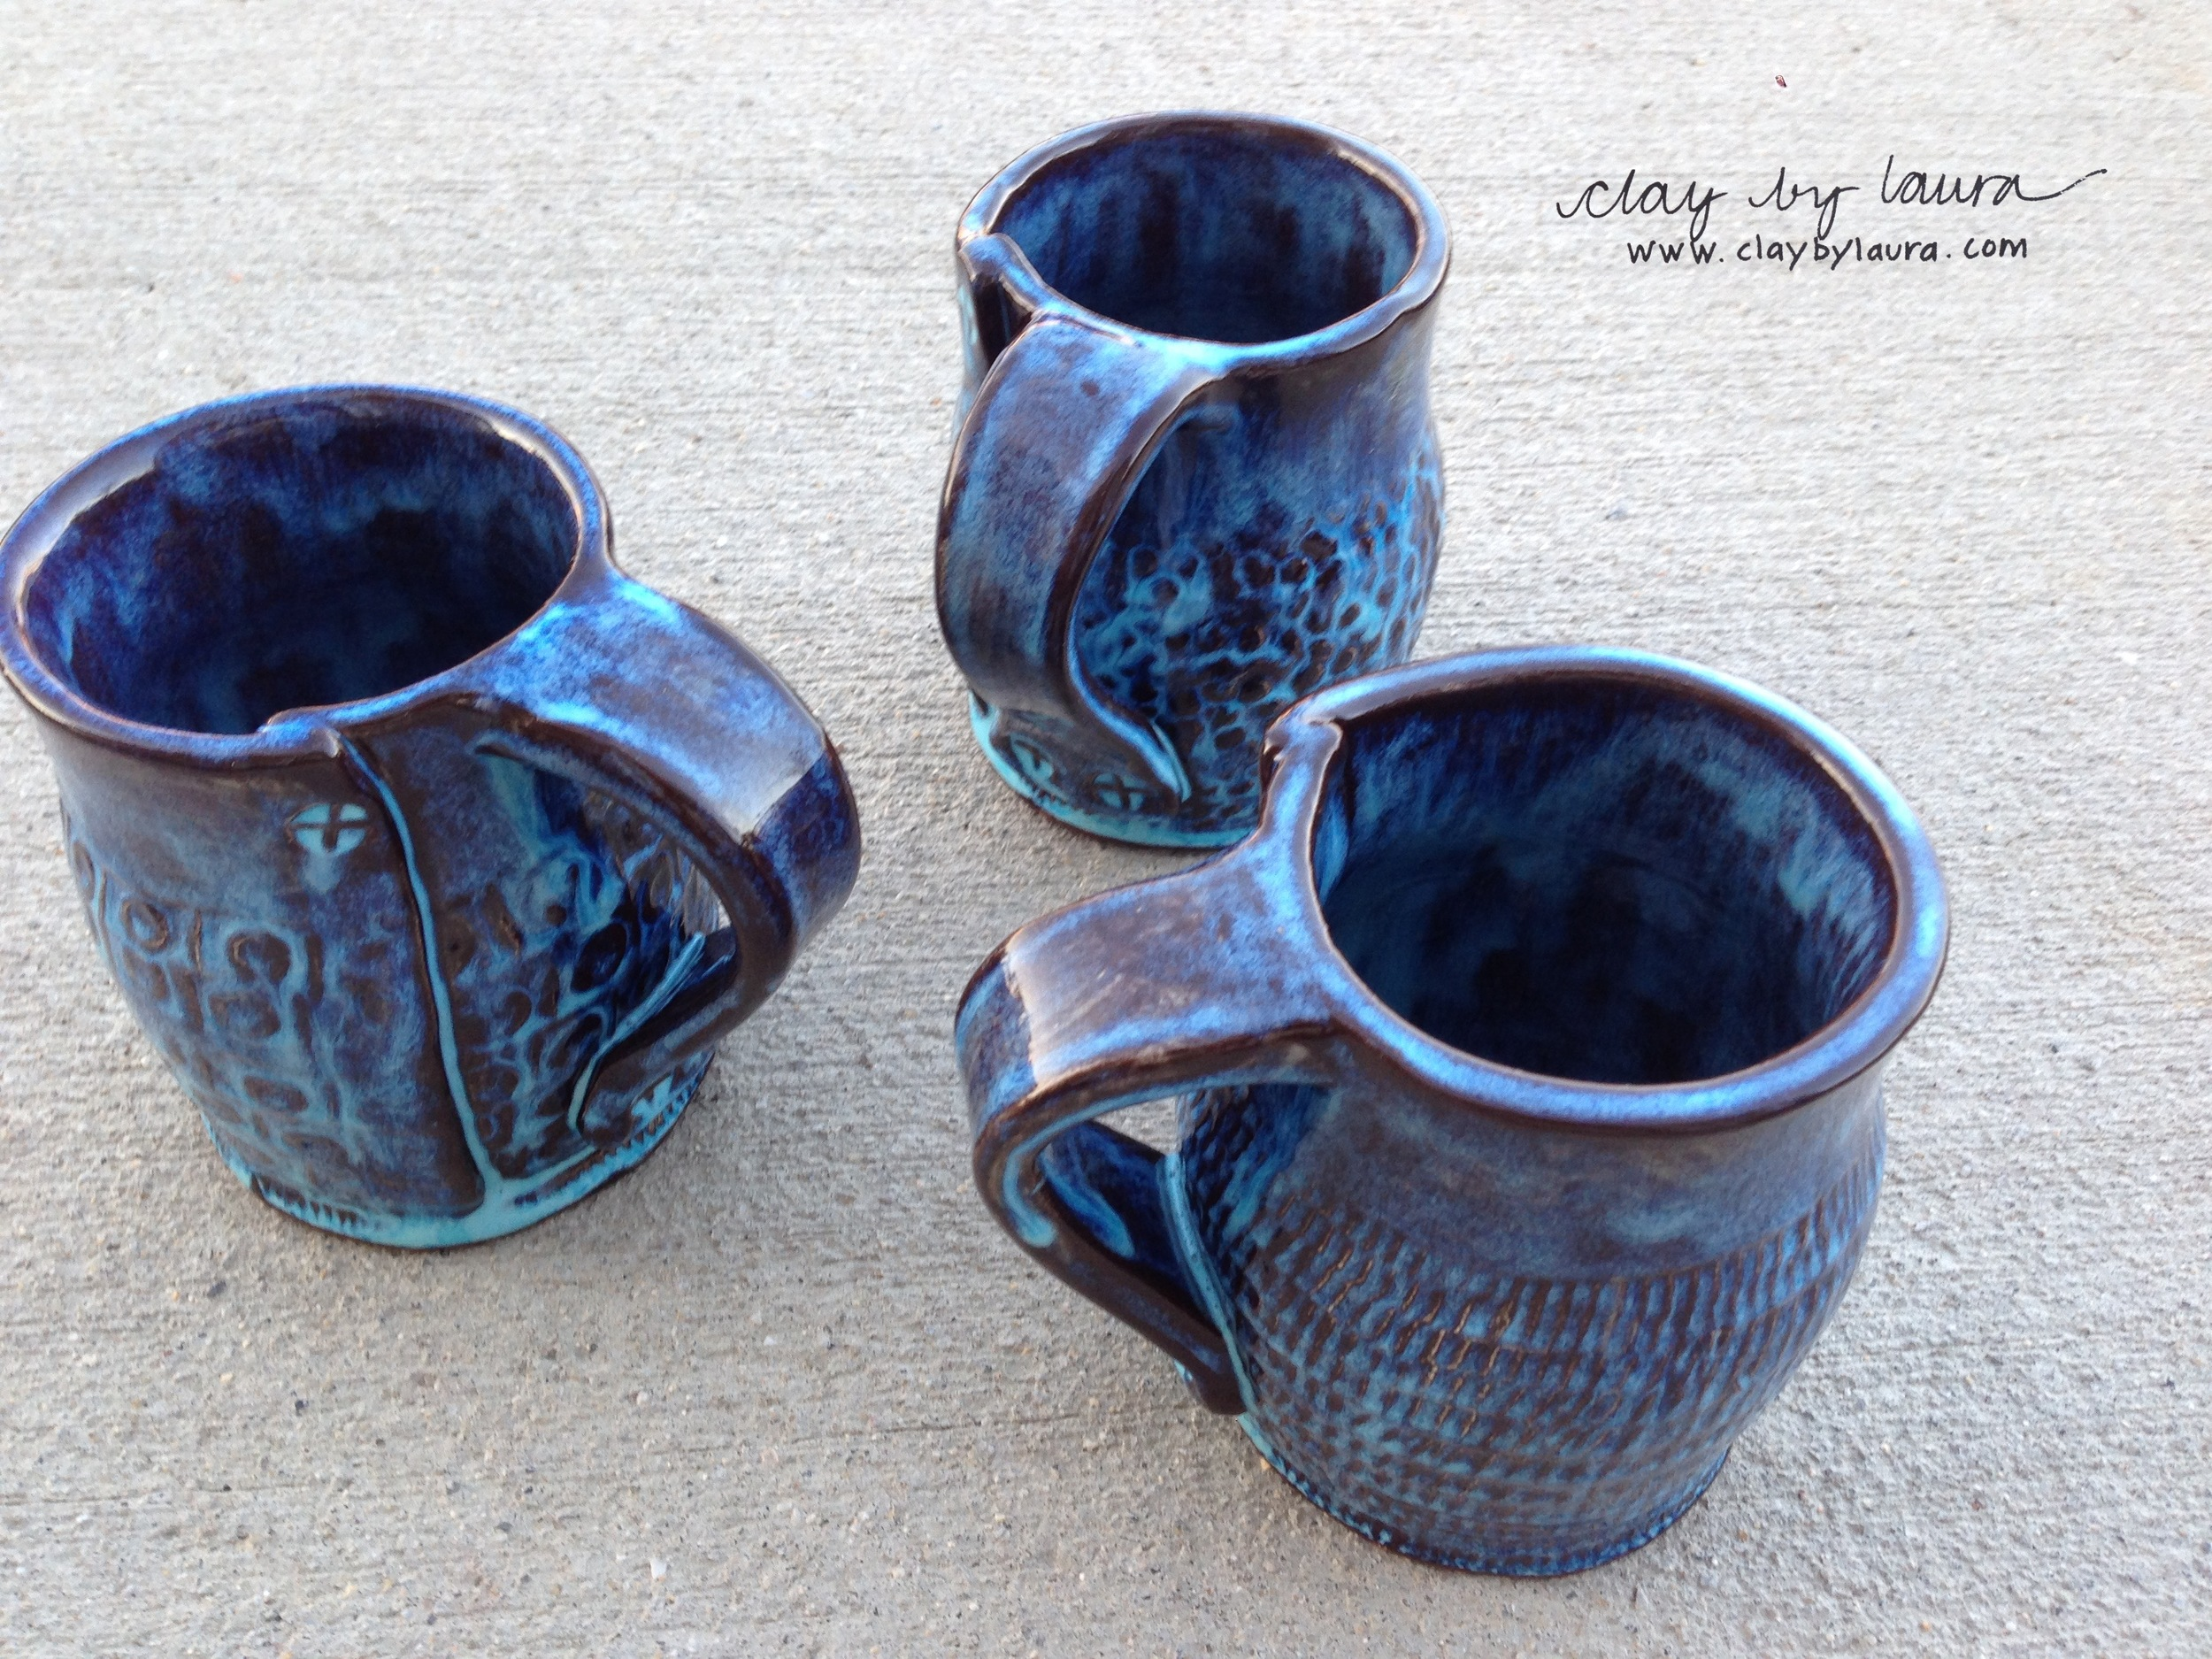 The colors and designs of the set of mugs was created specifically for one of my customers.